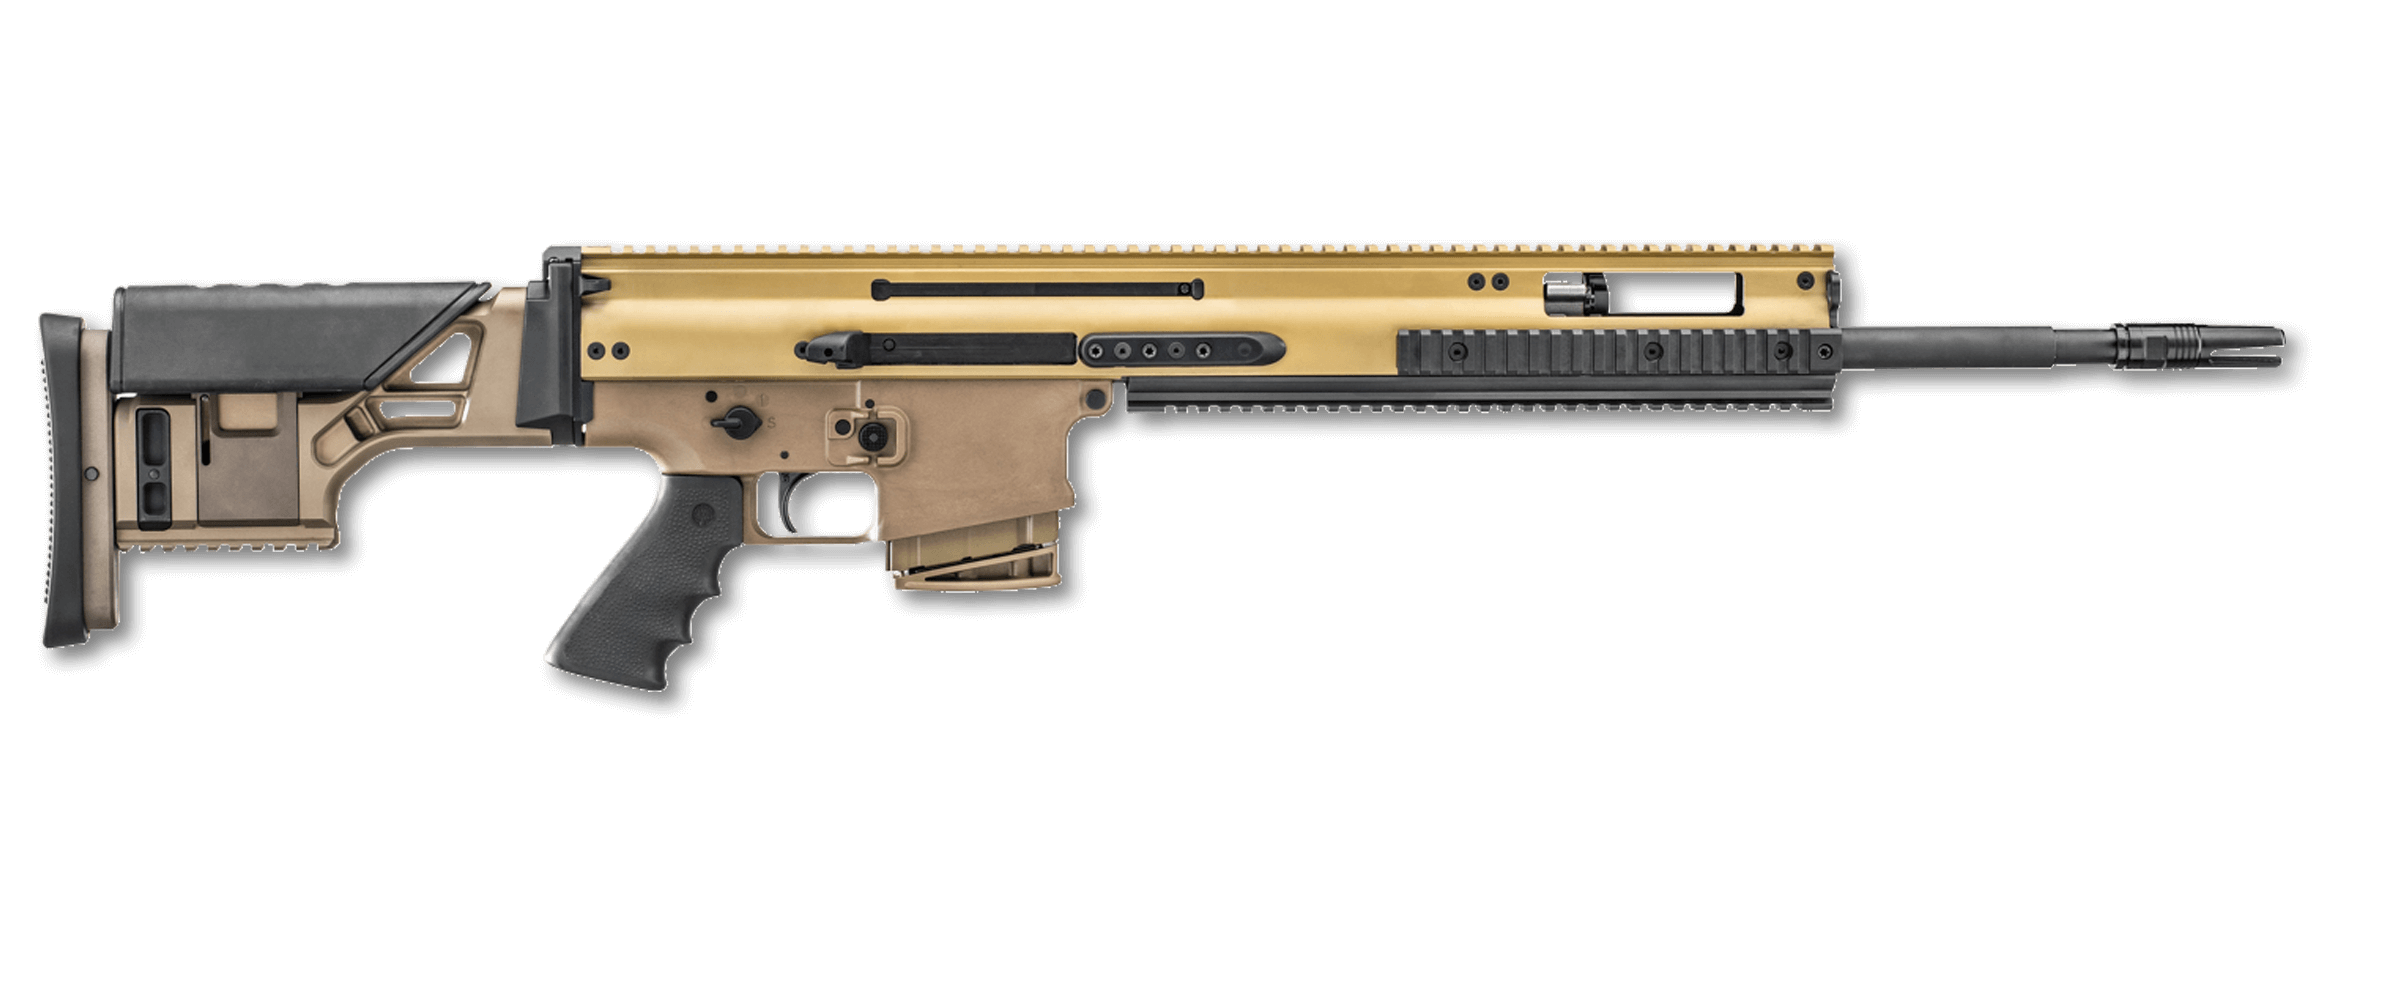 FN Announces Release of FN SCAR 20S Precision Rifle